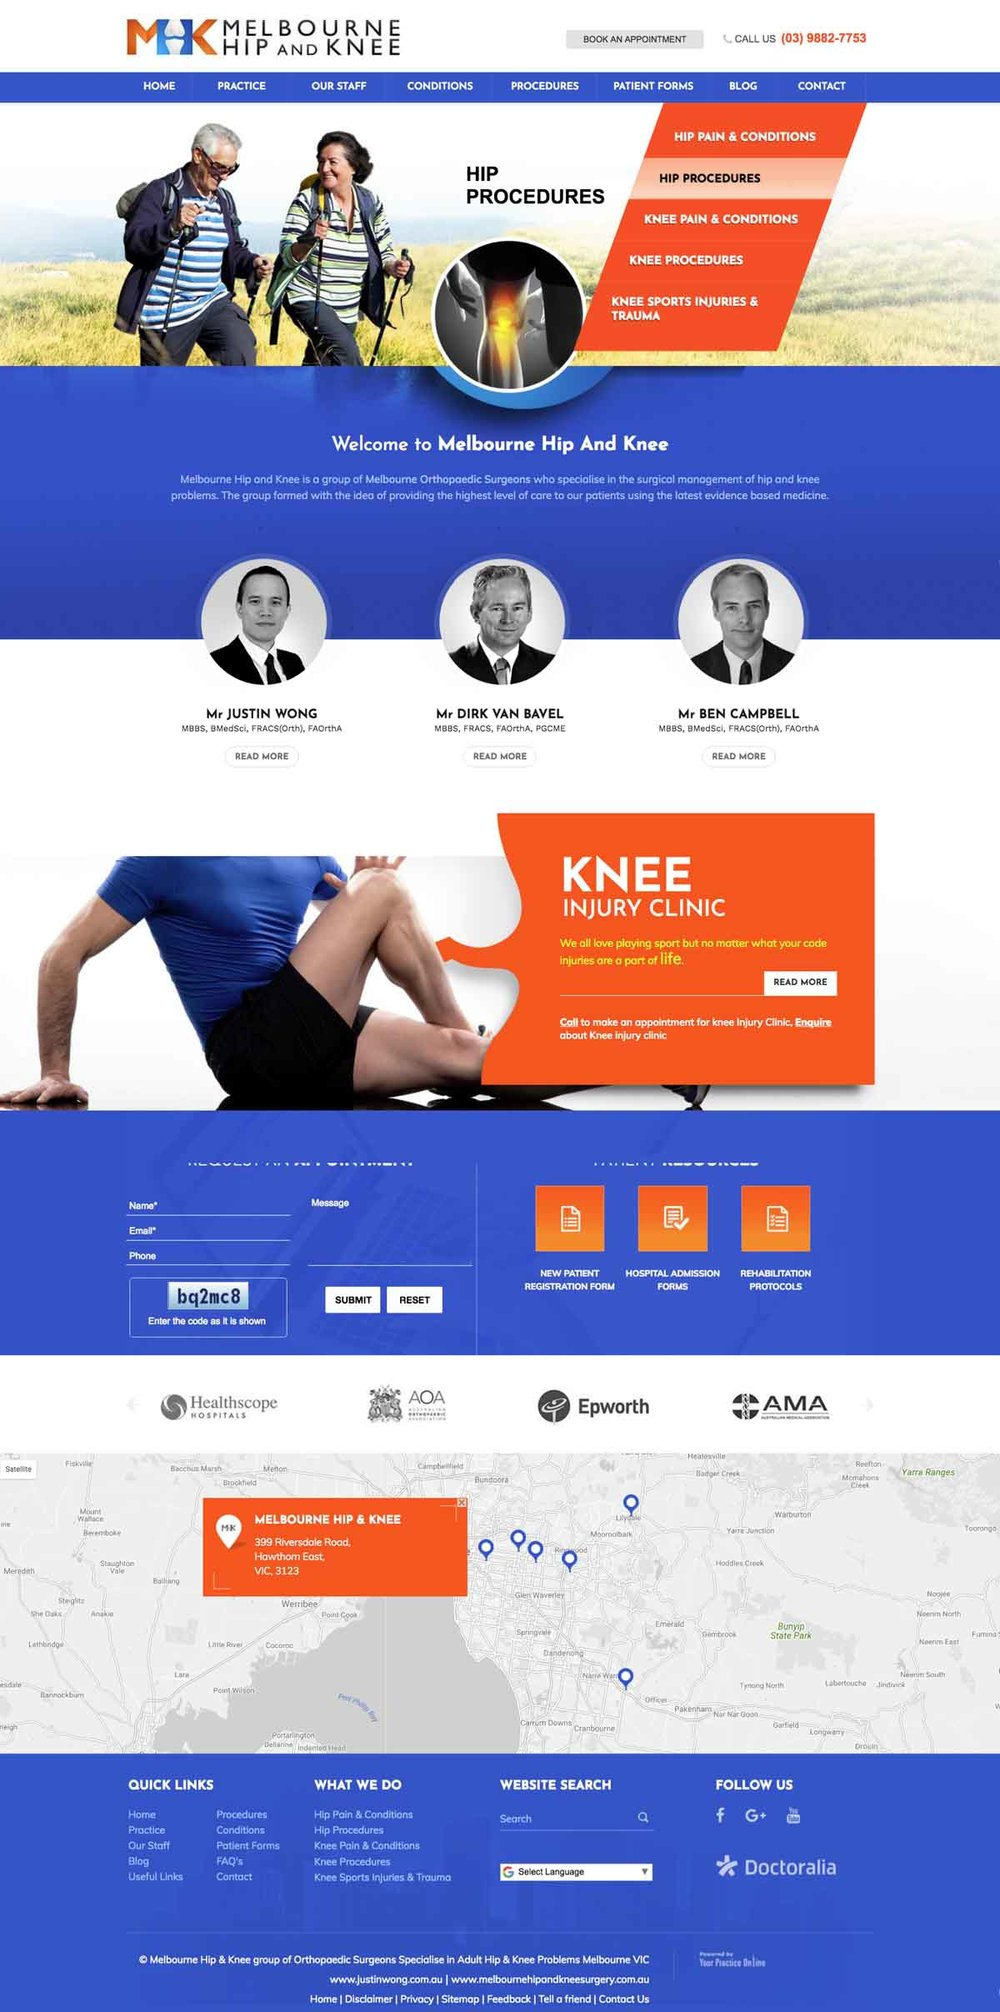 Website for Hip & Knee Orthopaedic Surgeon Melbourne